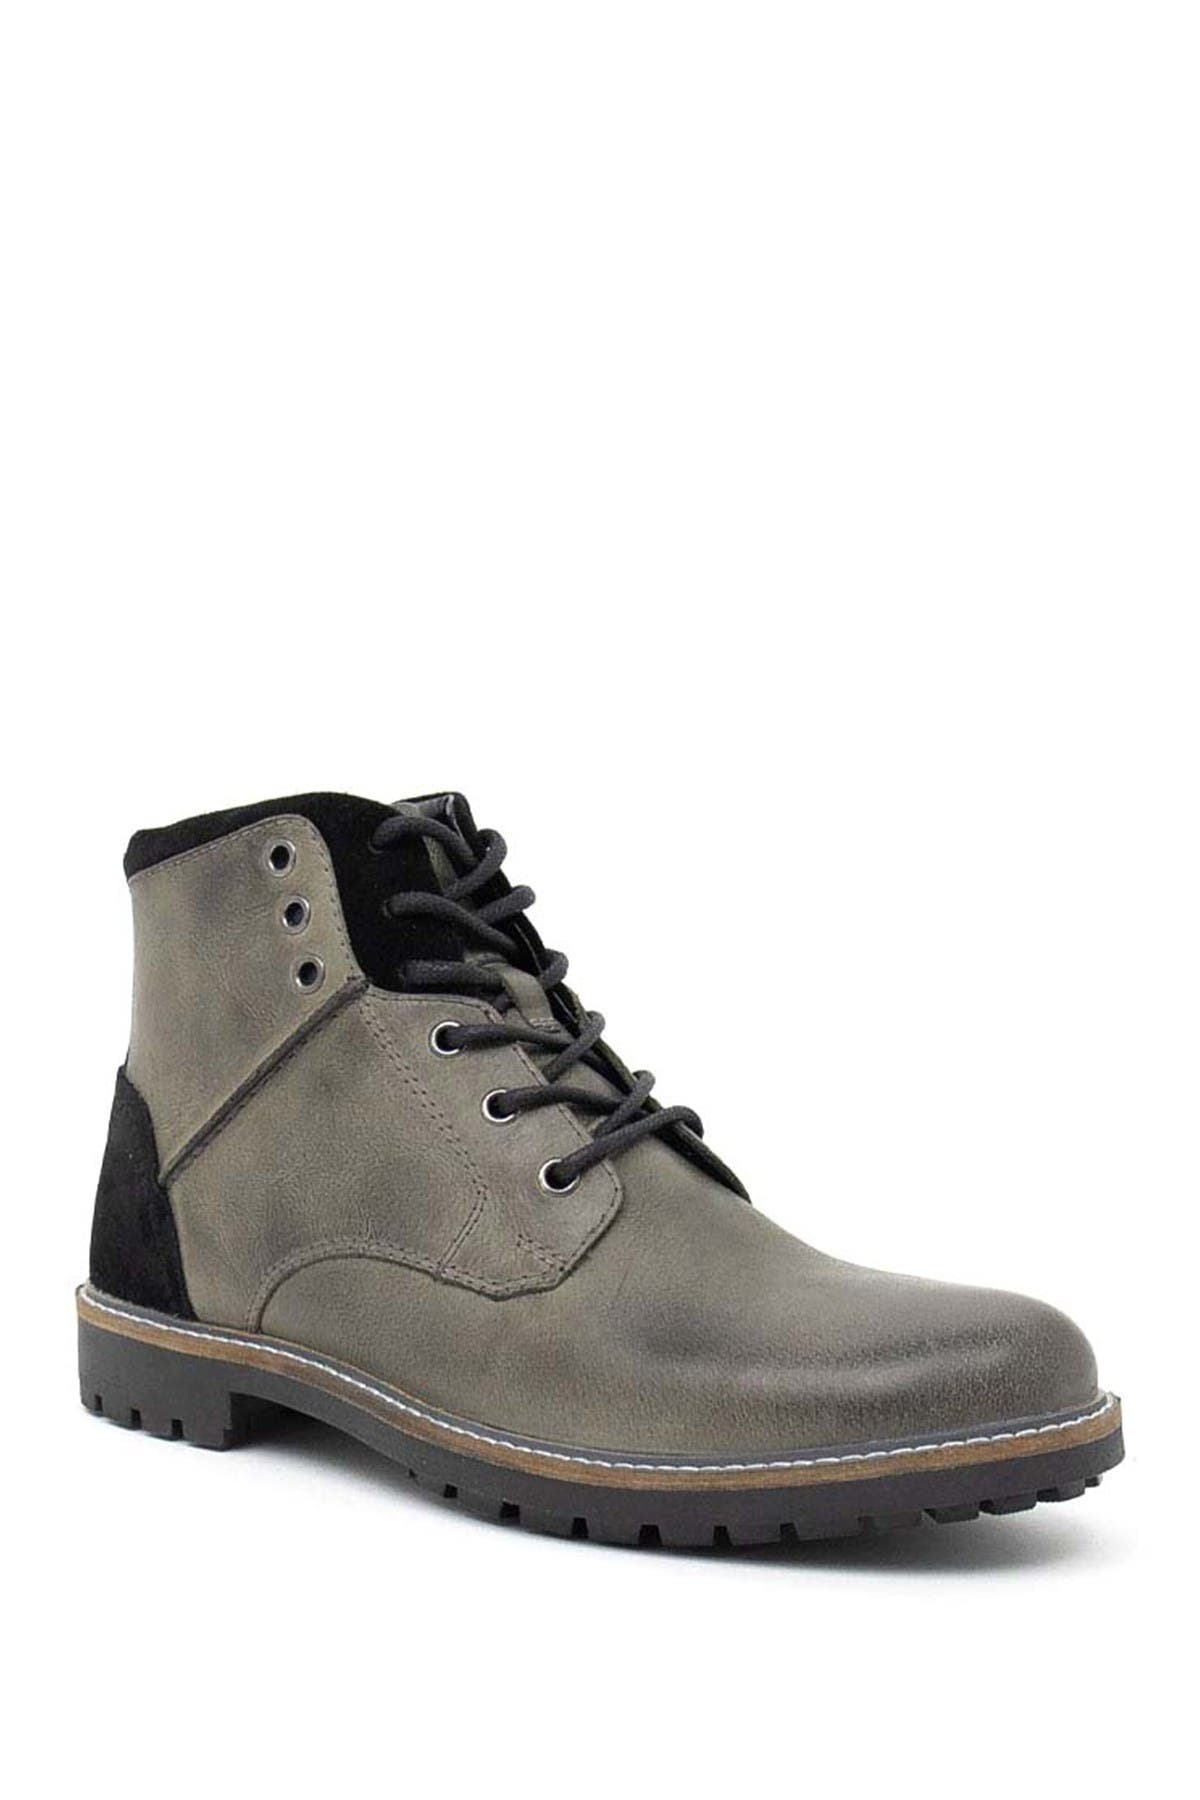 Image of Crevo Albany Leather Boot